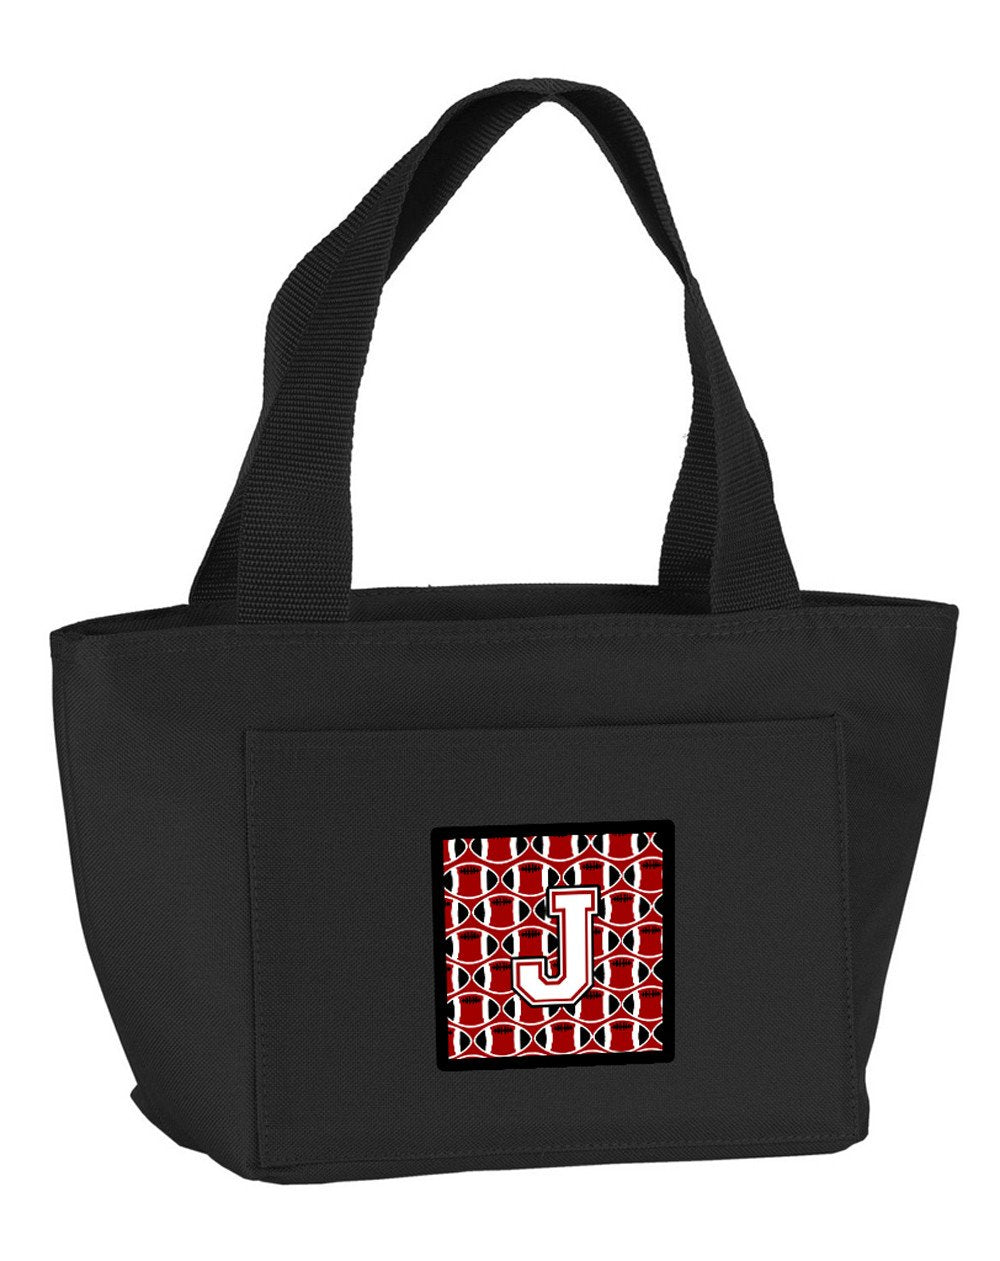 Letter J Football Cardinal and White Lunch Bag CJ1082-JBK-8808 by Caroline's Treasures